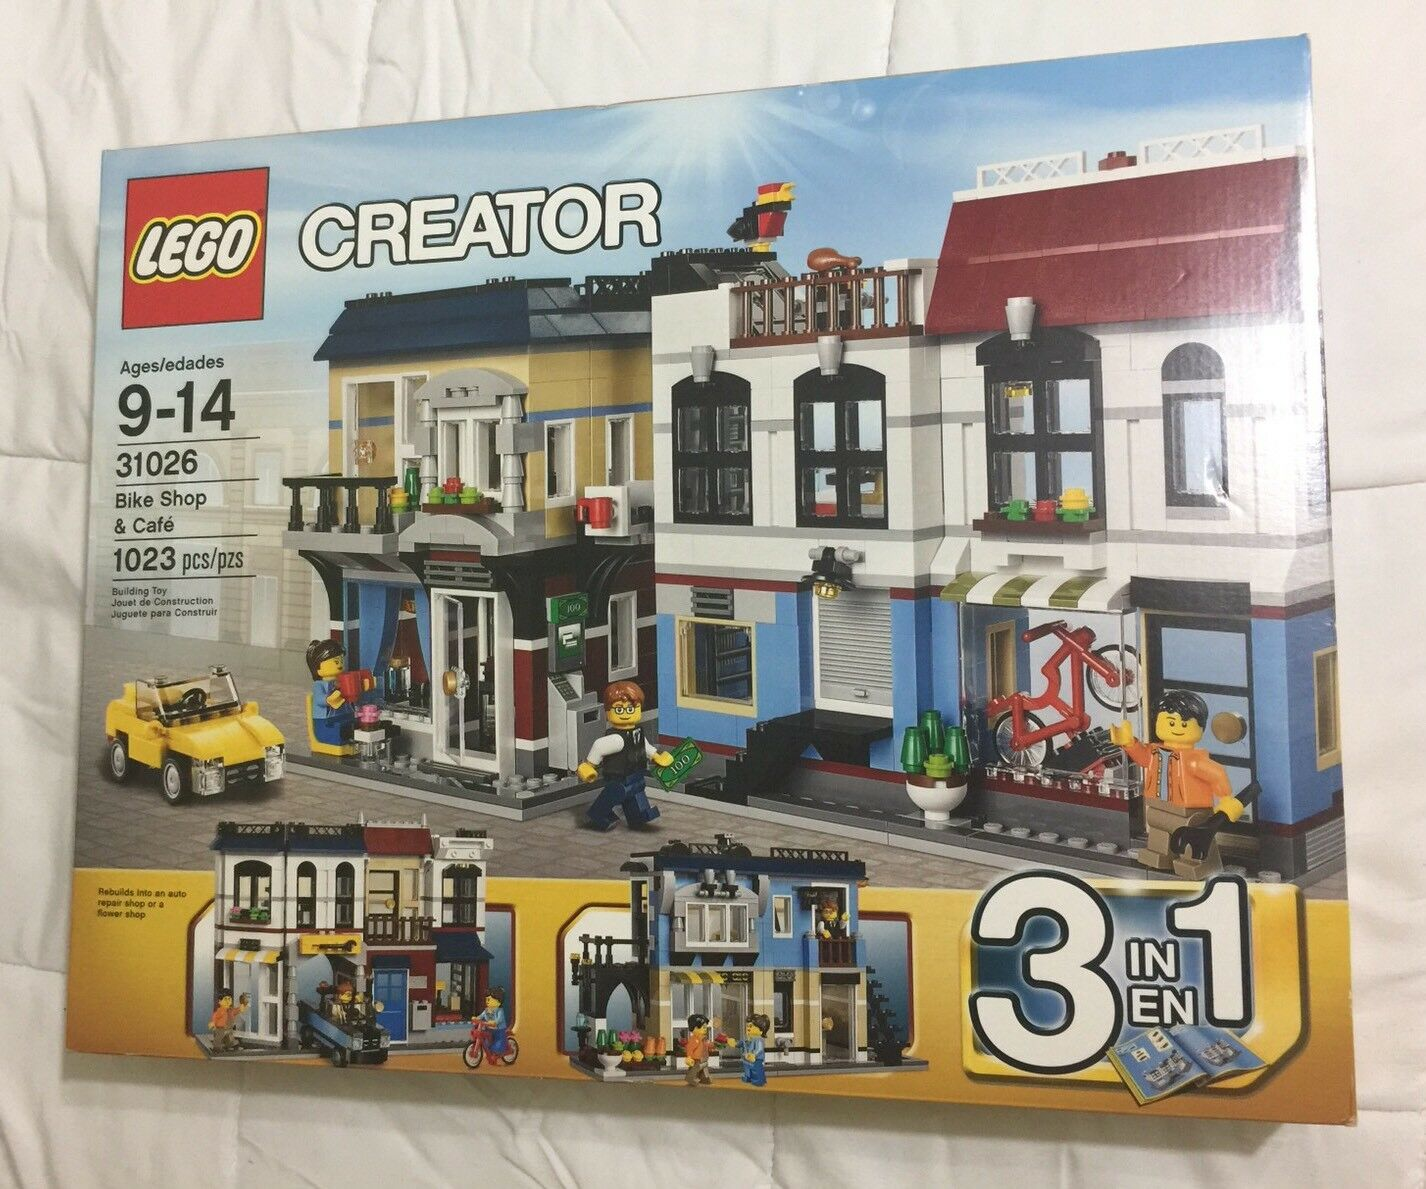 Nuovo in Unopened Factory Sealed Box - LEGO Creator Bike Shop & Café  31026